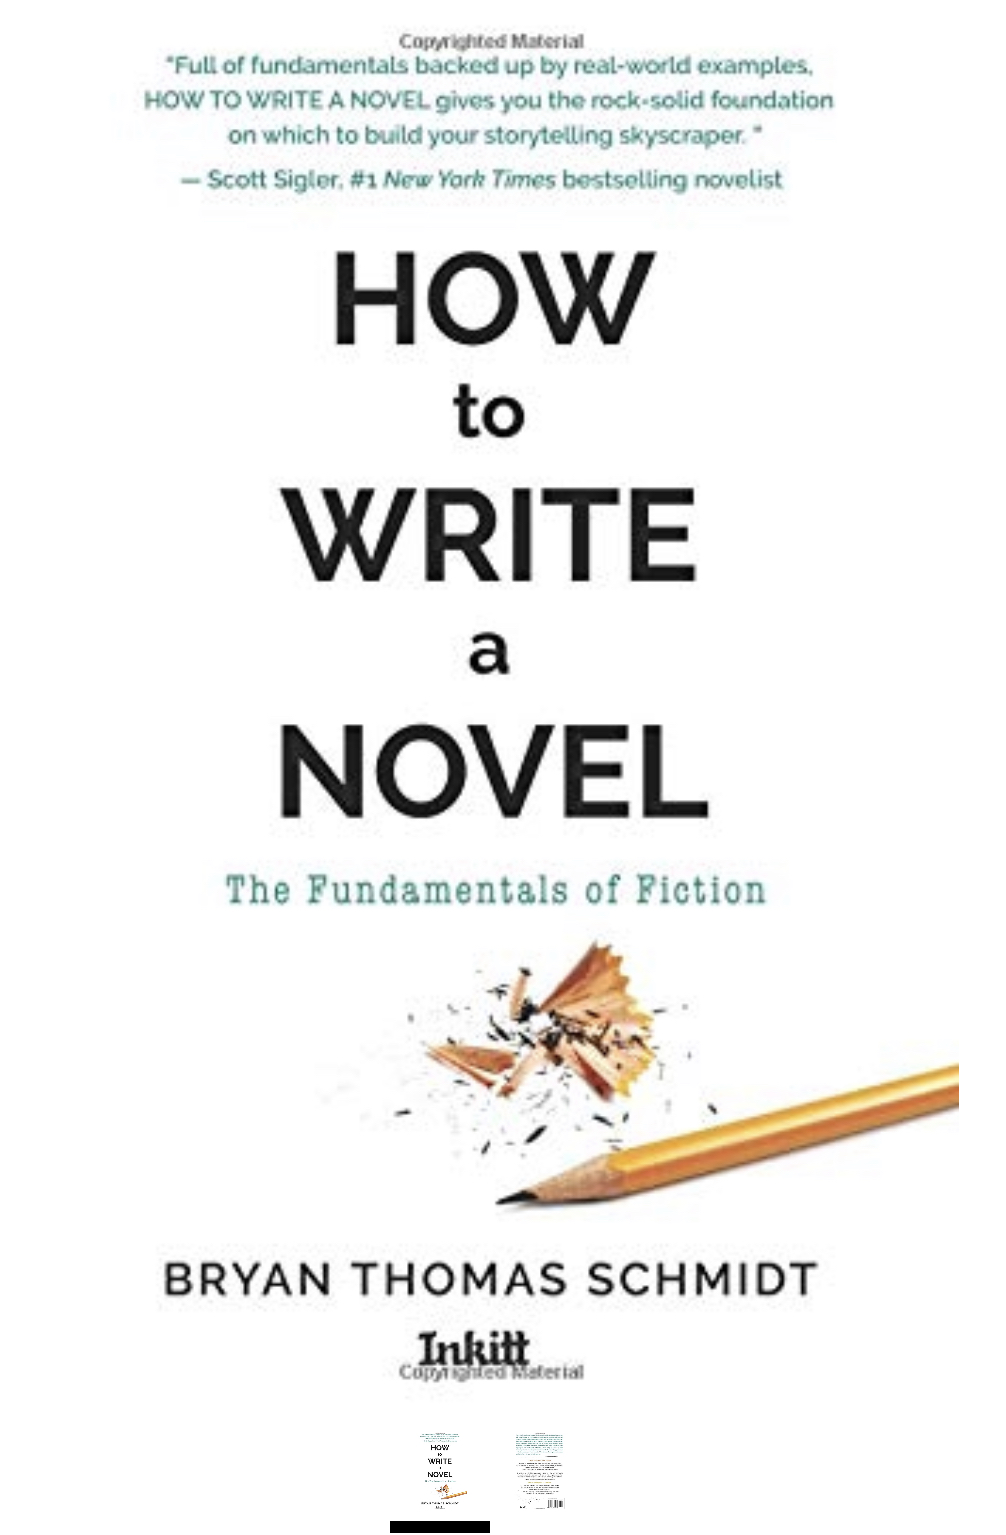 How To Write A Novel: The Fundamentals of Fiction by Bryan Thomas Schmidt